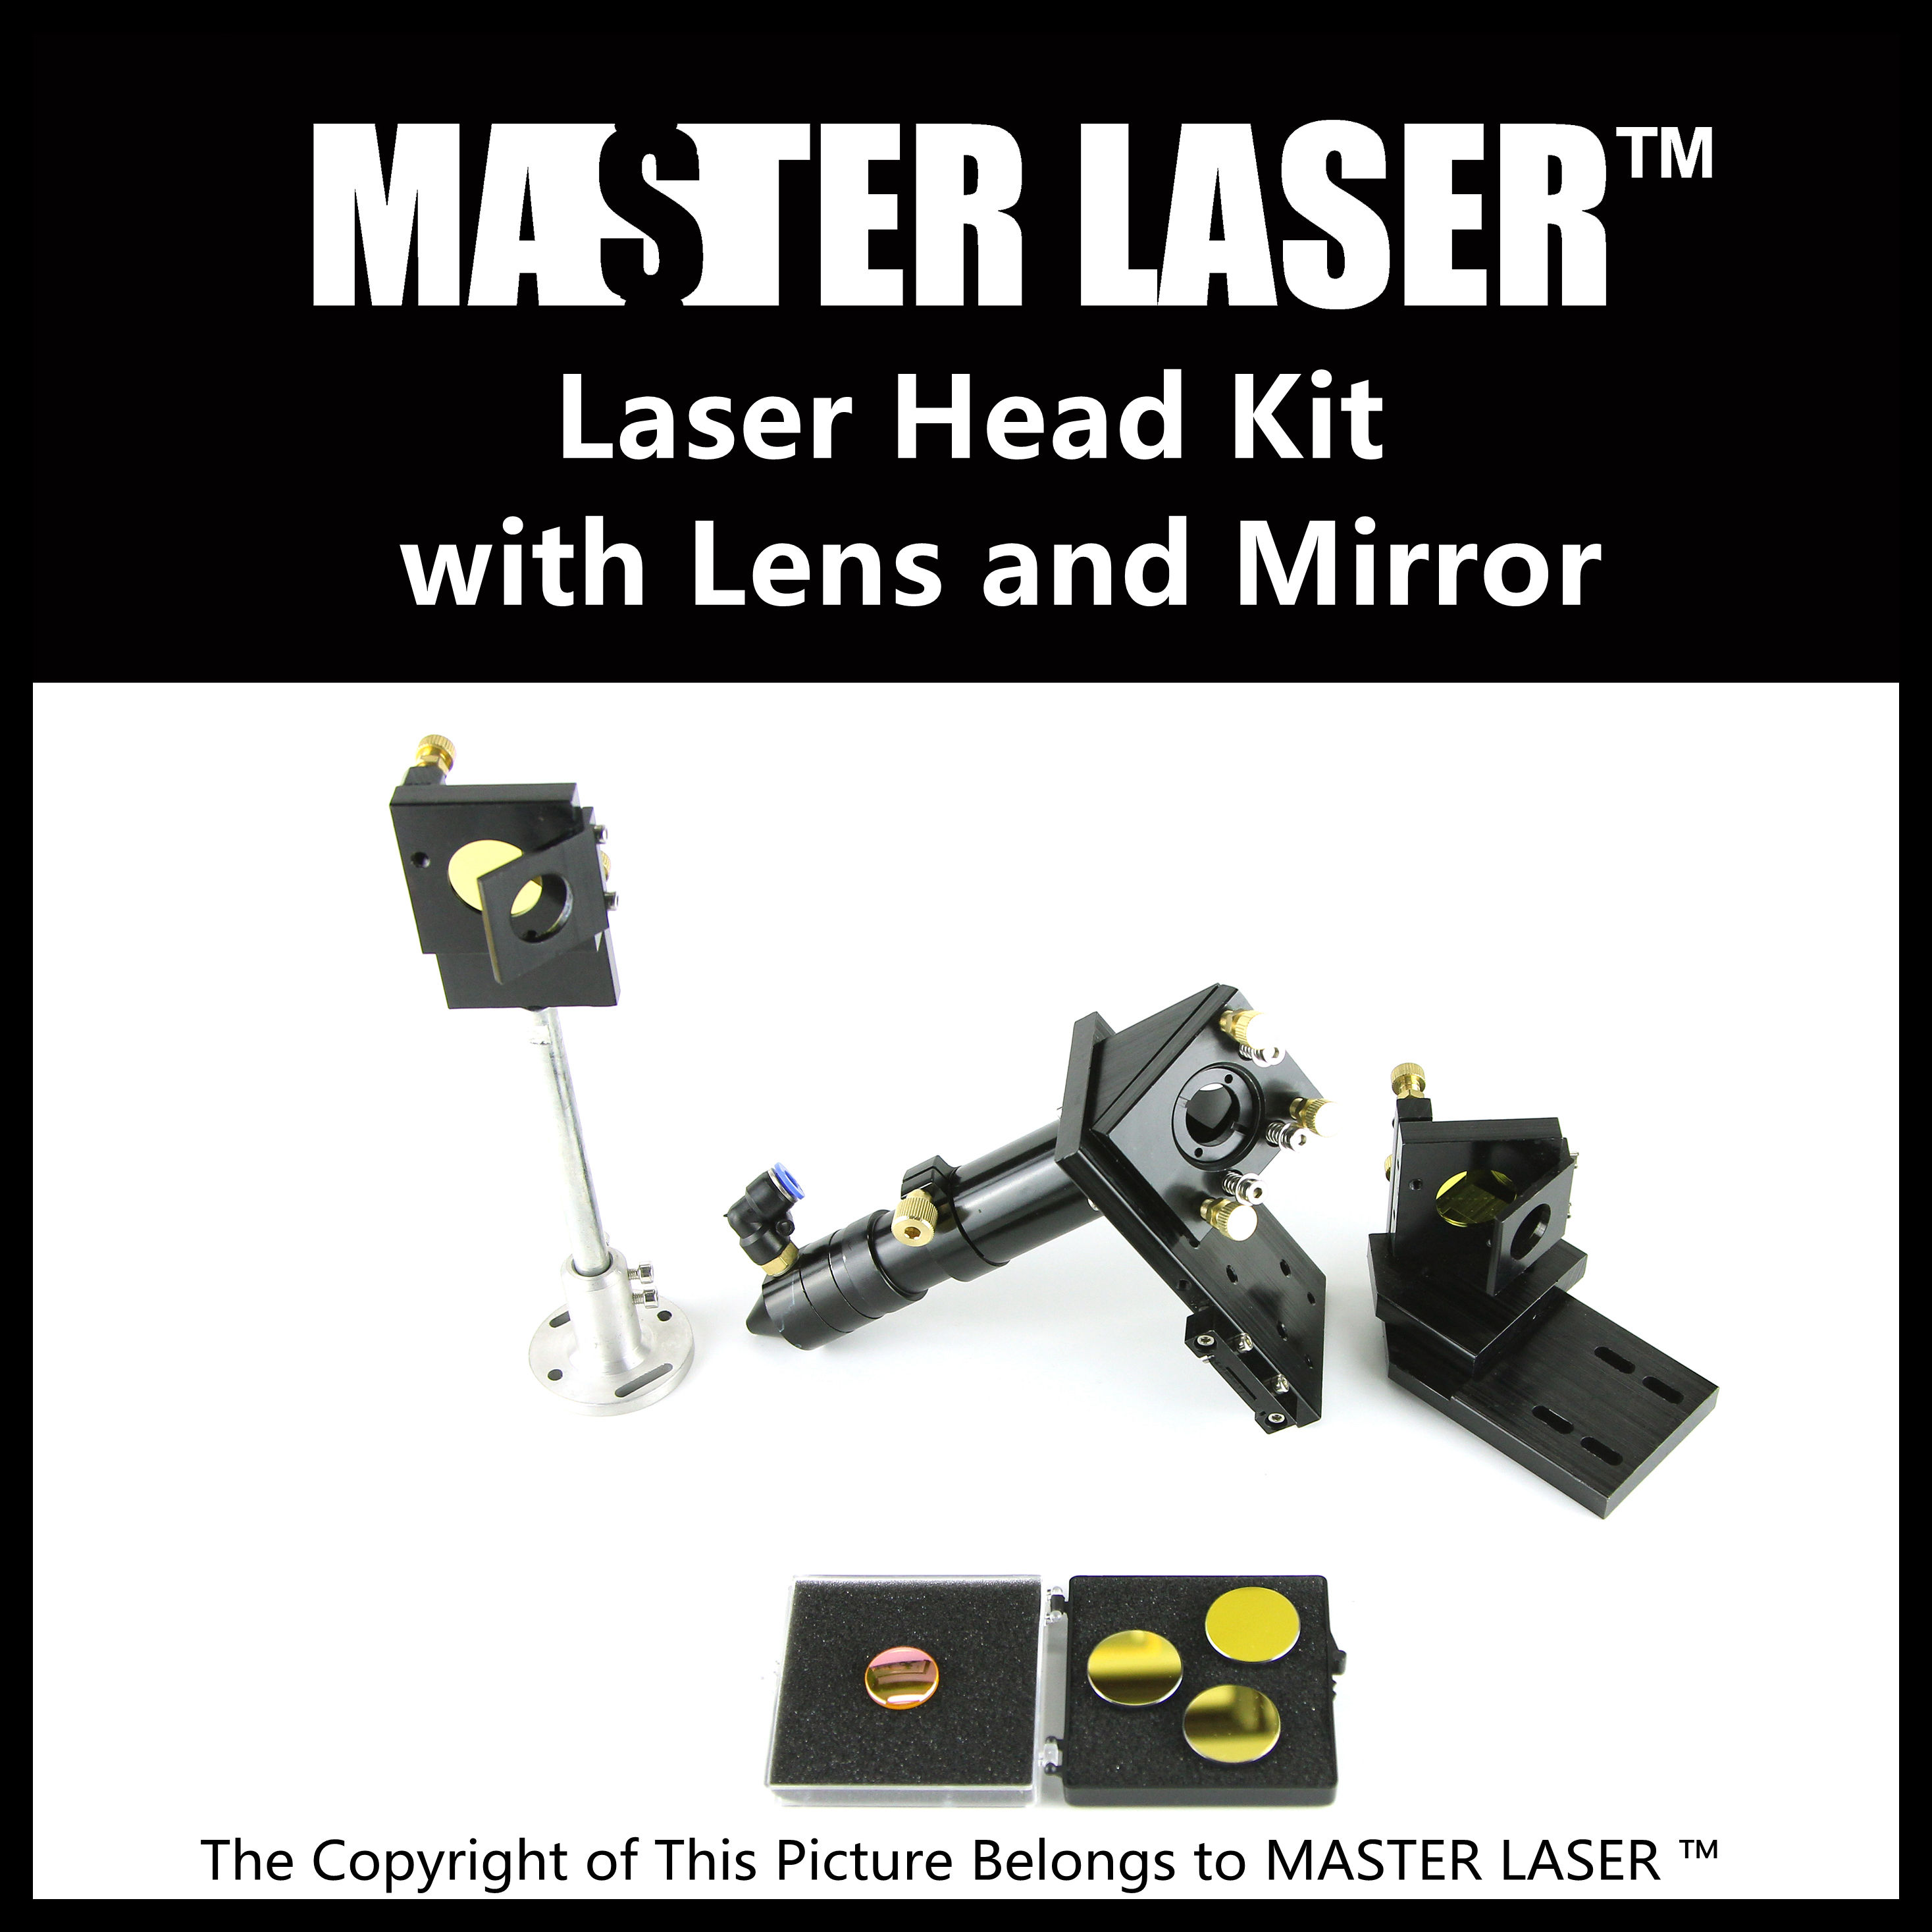 Best Quality Laser Mounts for CO2 Laser Cuting Machine  Laser Cutting Head Mirror Mount Reflect Mirror and Focus Lens Kit co2 laser head mirror and lens integrative mount laser cutting engraving